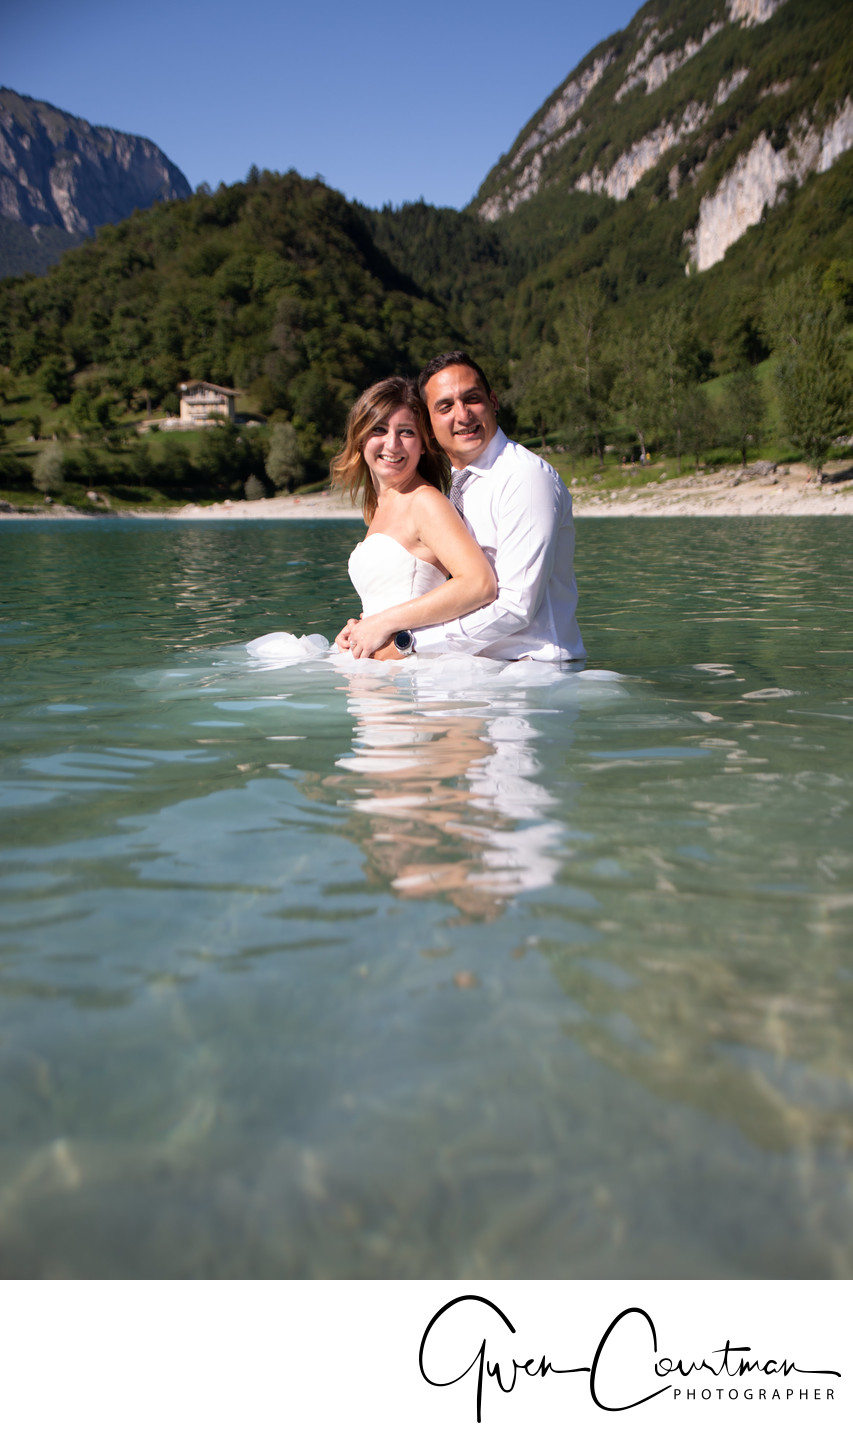 Fun Drown the gown photos in Italy, Lake Garda